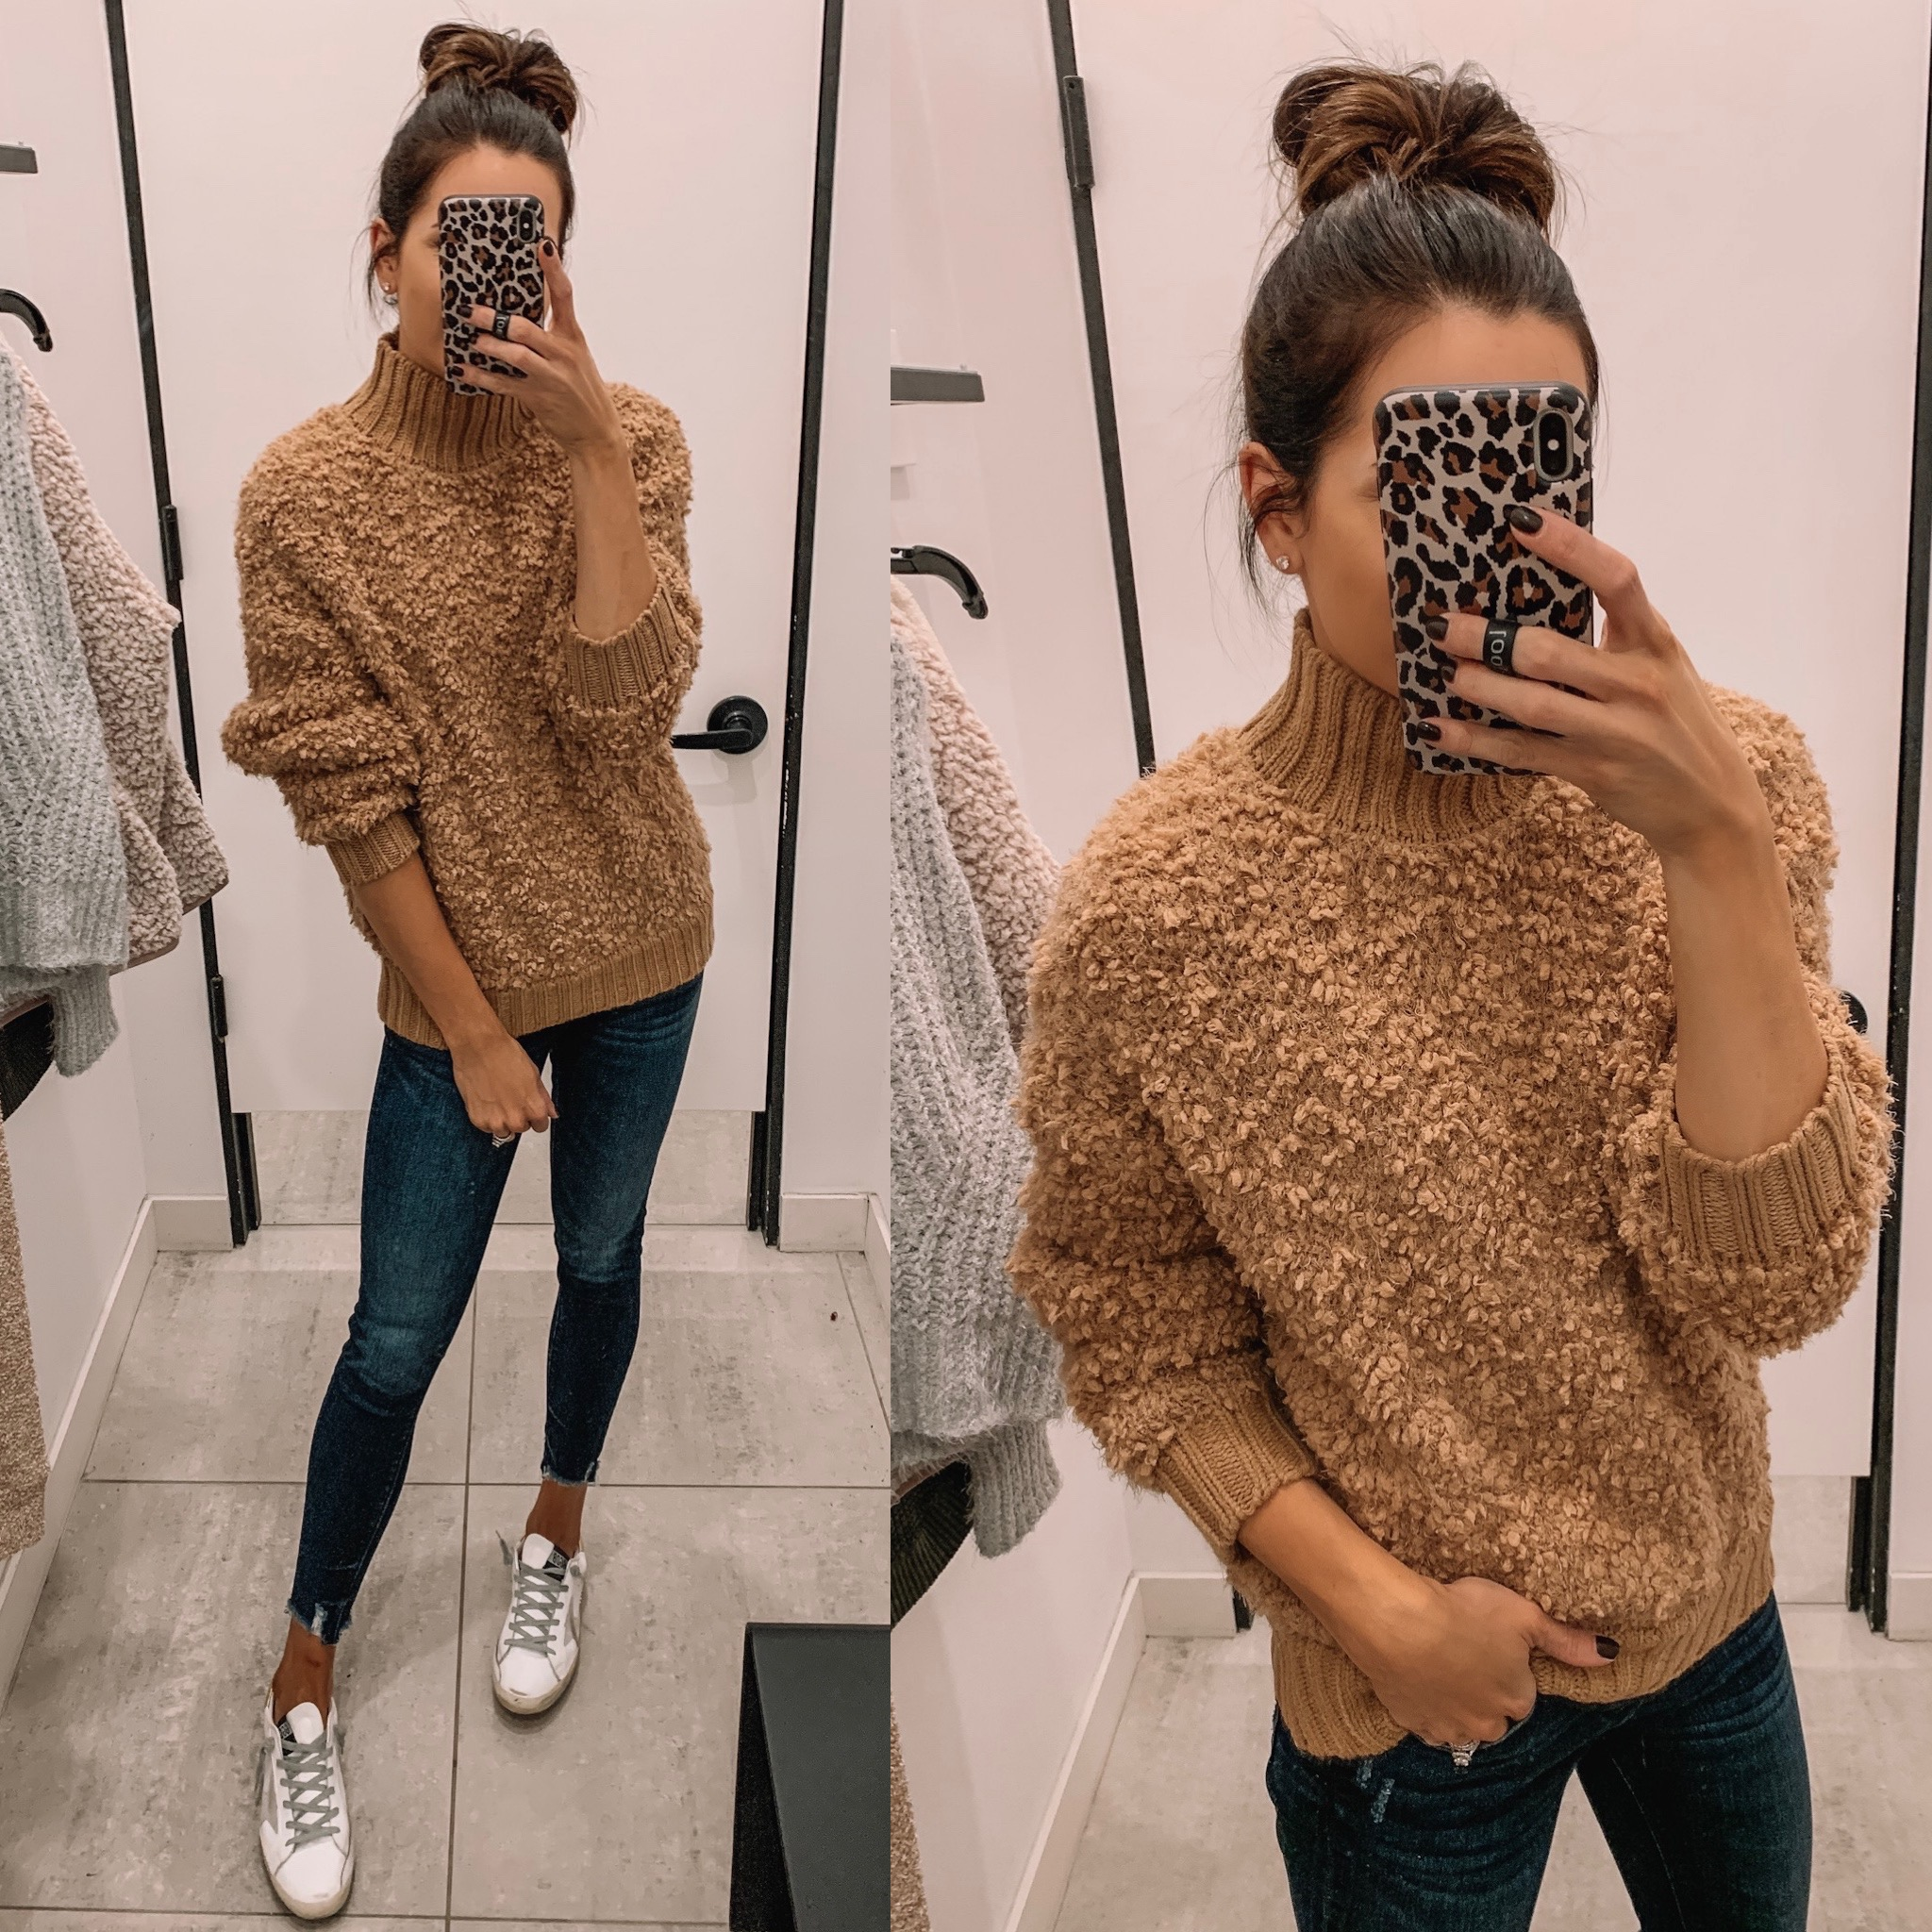 express Black Friday cyber Monday sale 2019. chenille pullover, affordable fashion, winter fashion, cozy outfit, Minneapolis blogger